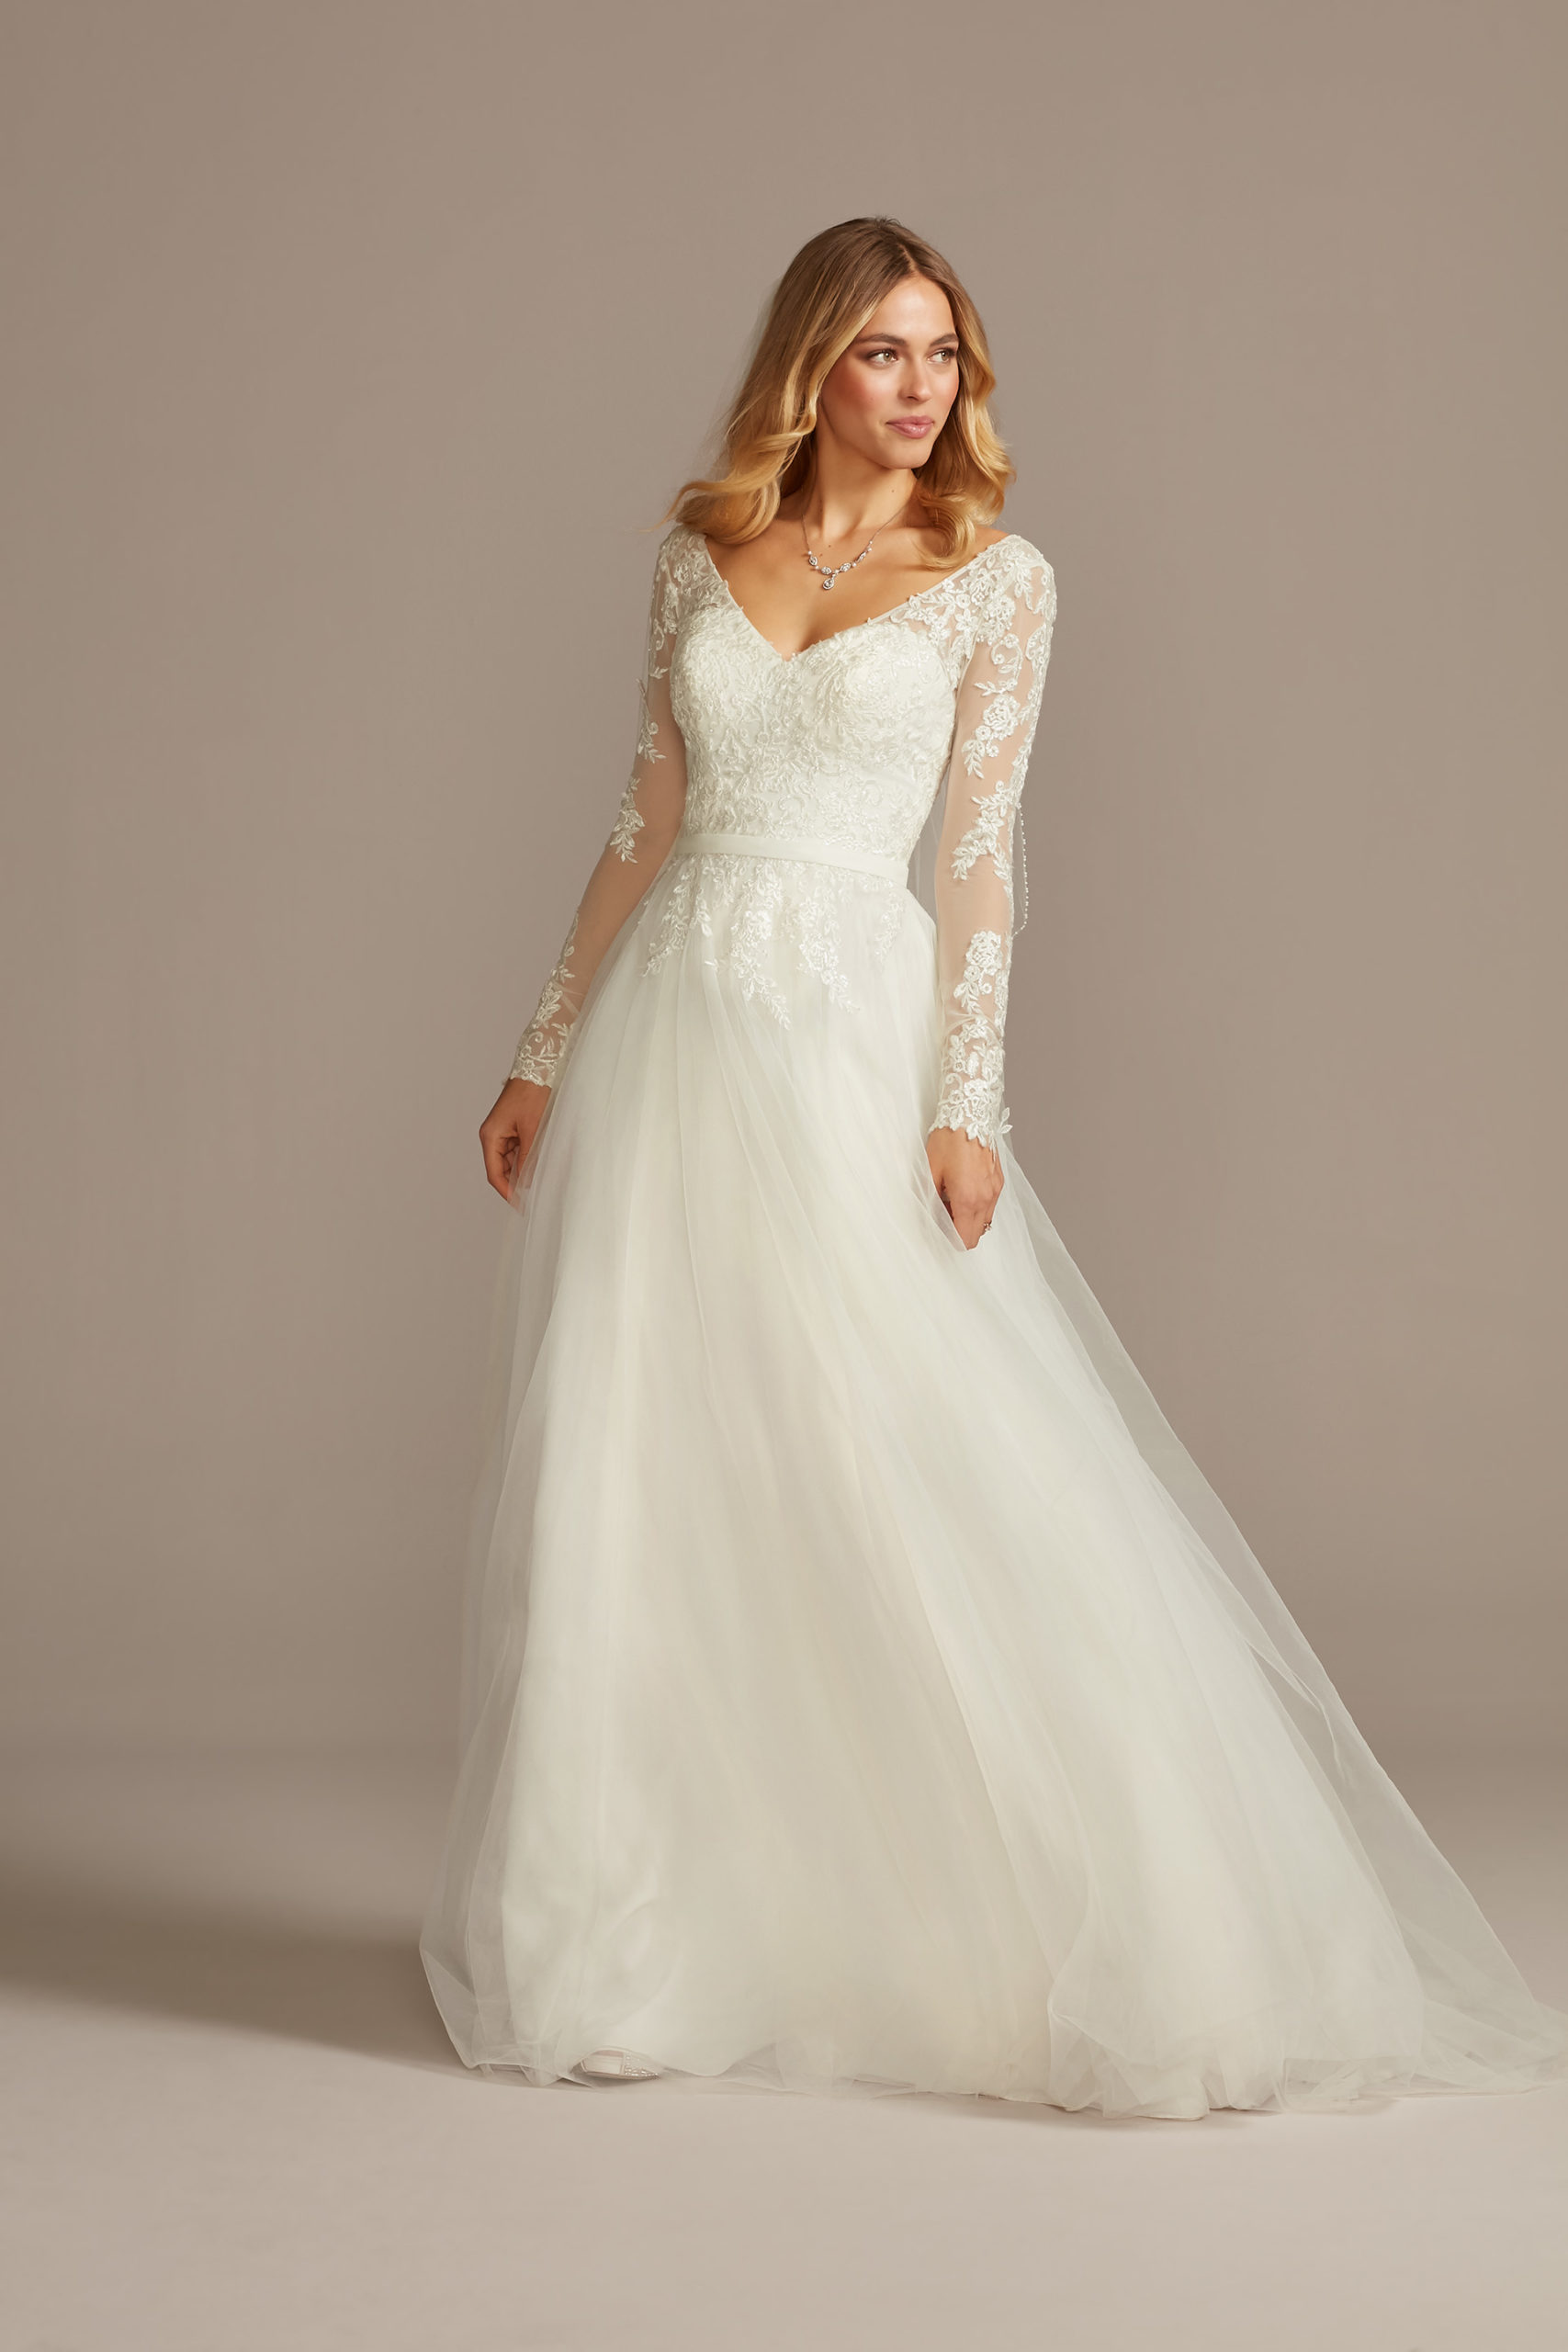 bride wearing wedding dress with illusion sleeves